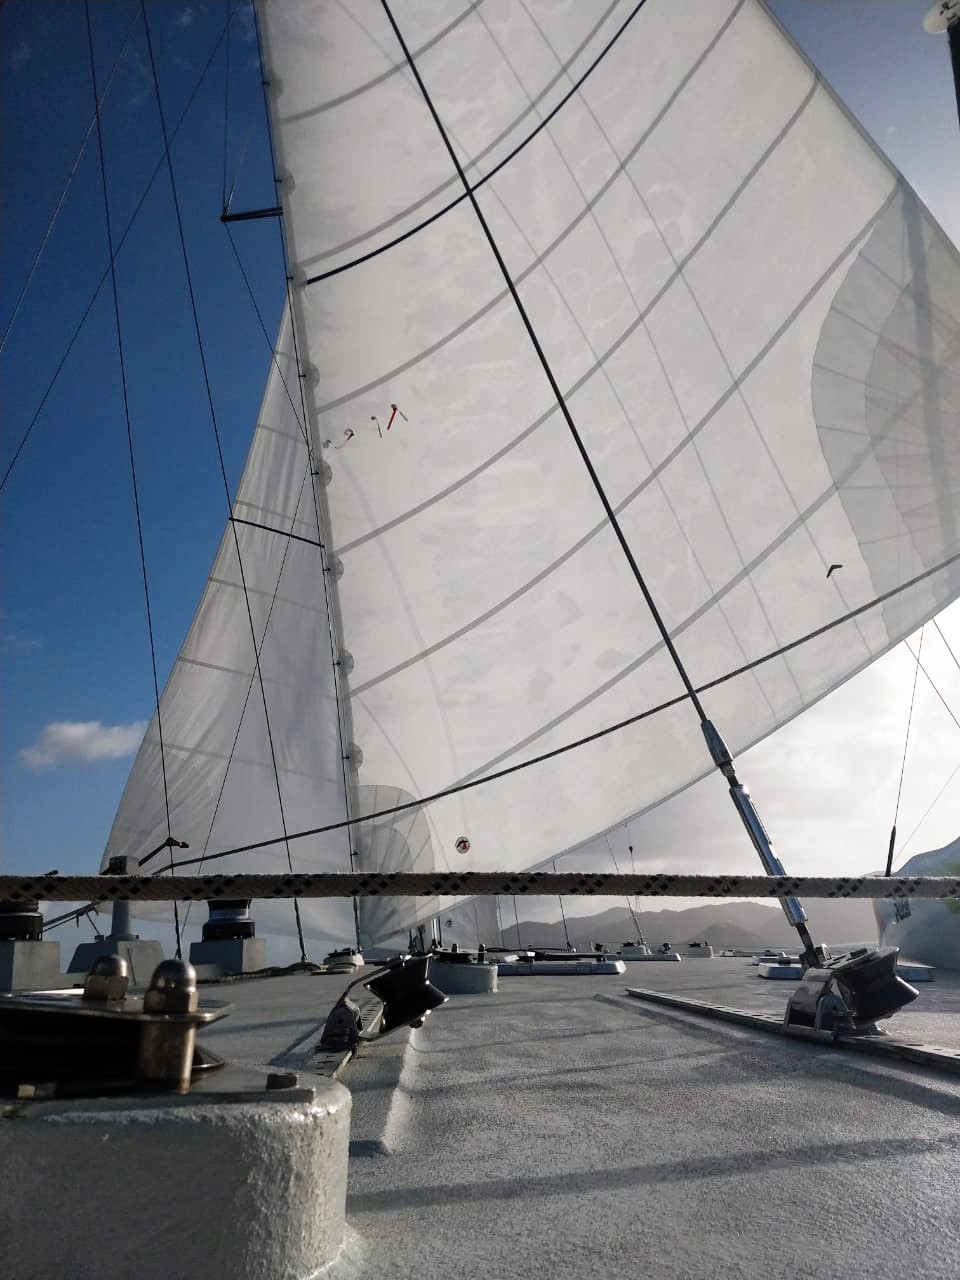 BVI Sailing - Sails up on Cuan Law